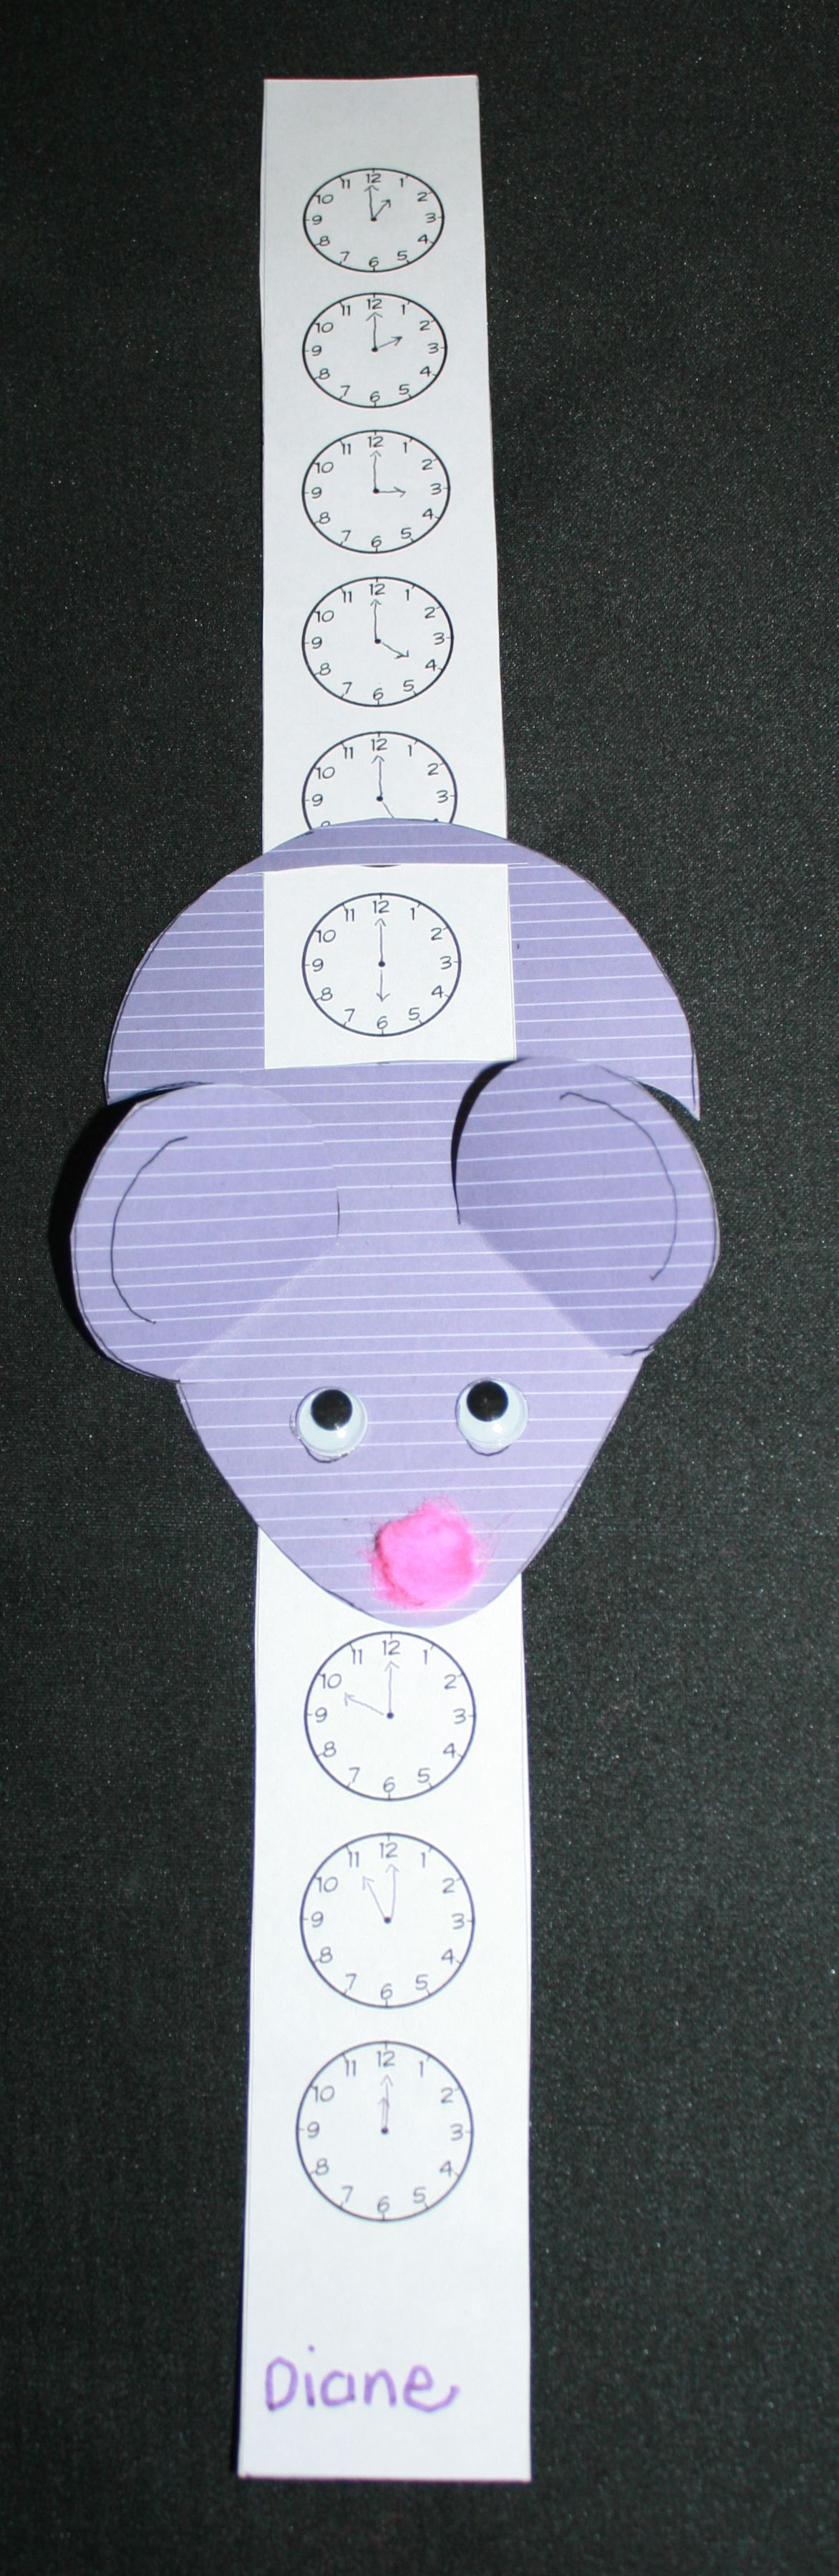 Hickory Dickory Clock Mouse Slider Reinforces Time To The